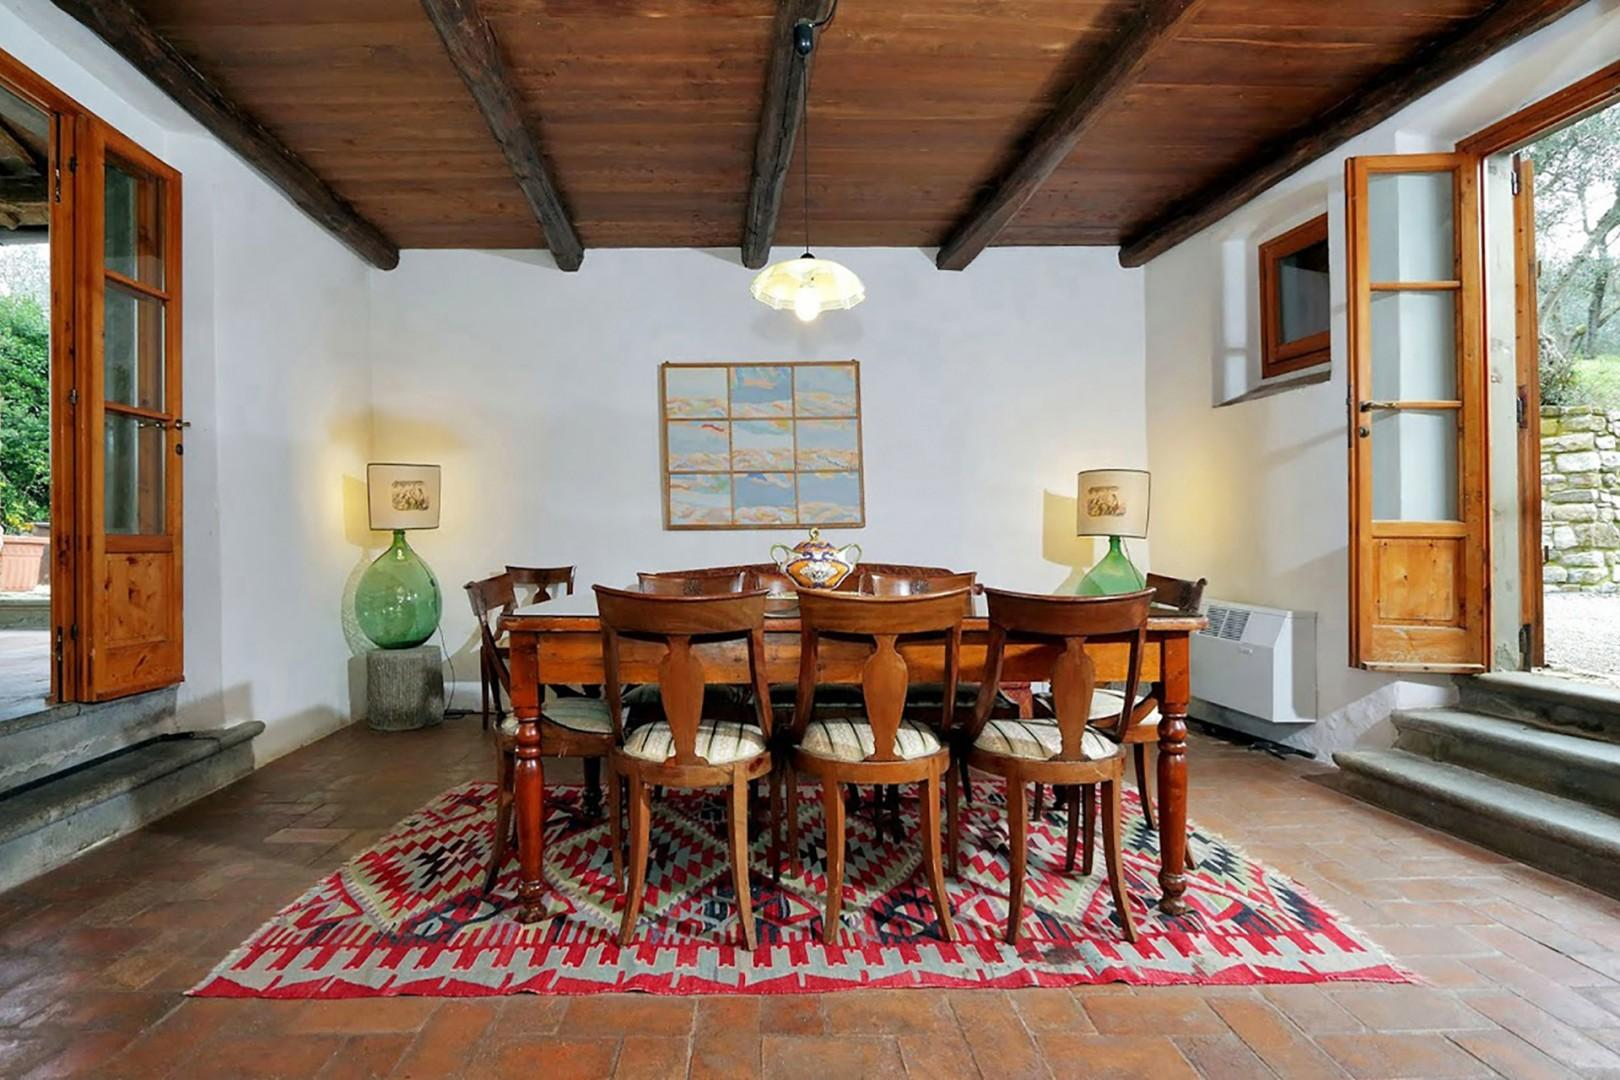 The country style dining room at Villa Poggio seats eight.